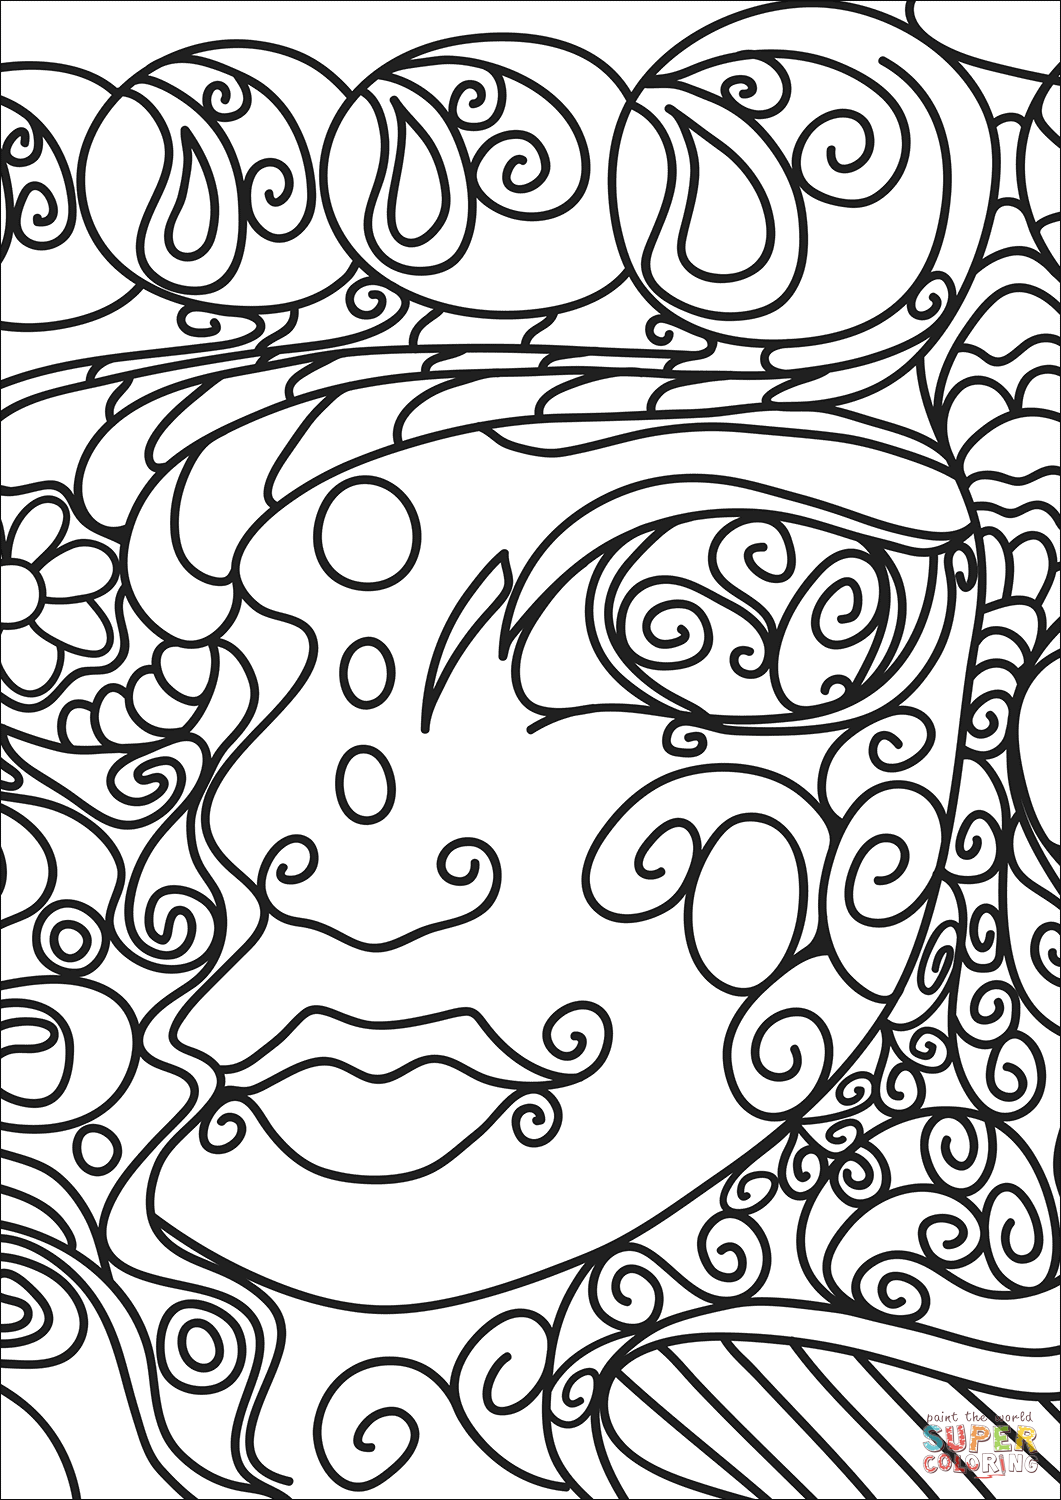 abstract art coloring pages printable abstract coloring page for adults high resolution free coloring abstract art pages printable